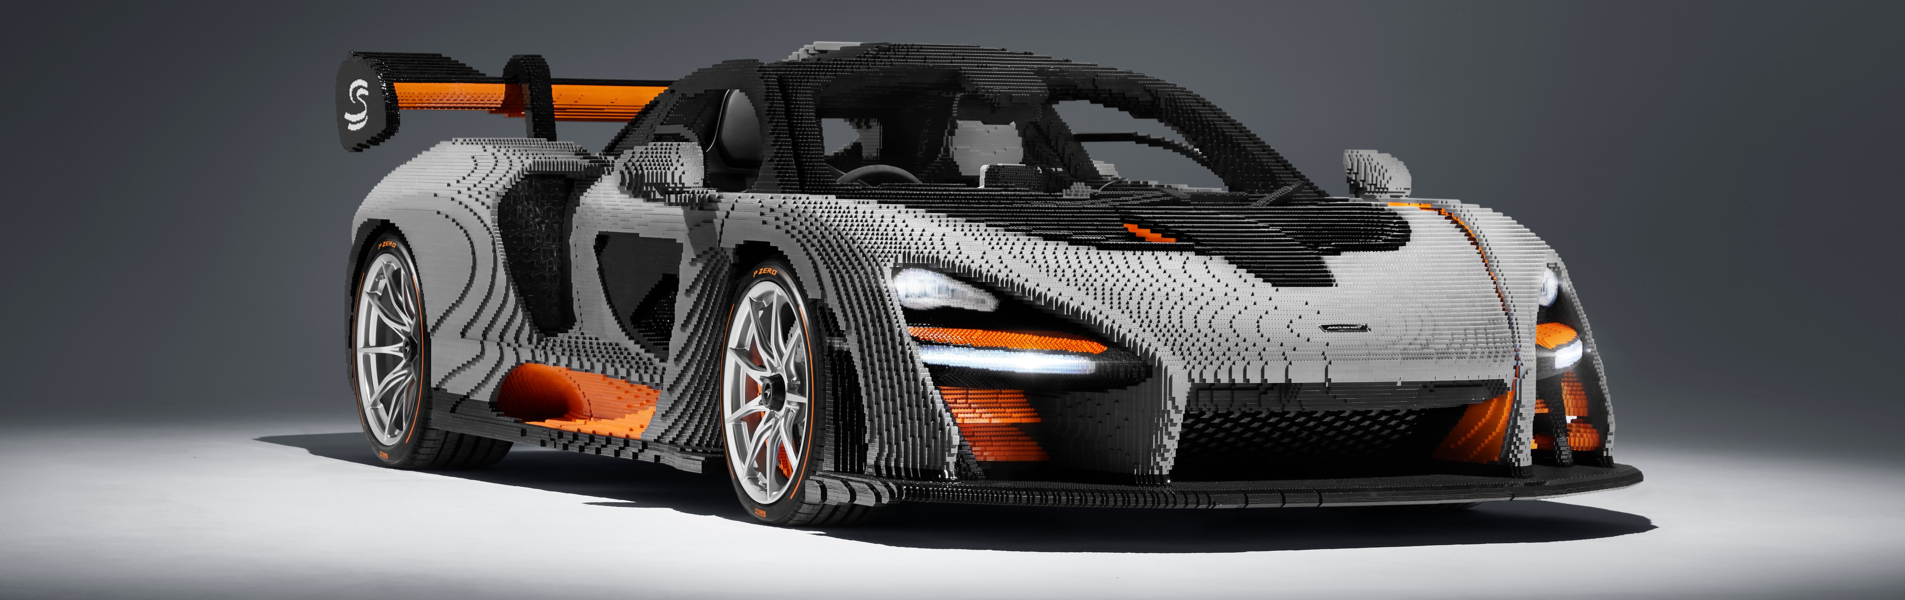 McLaren Collaborations